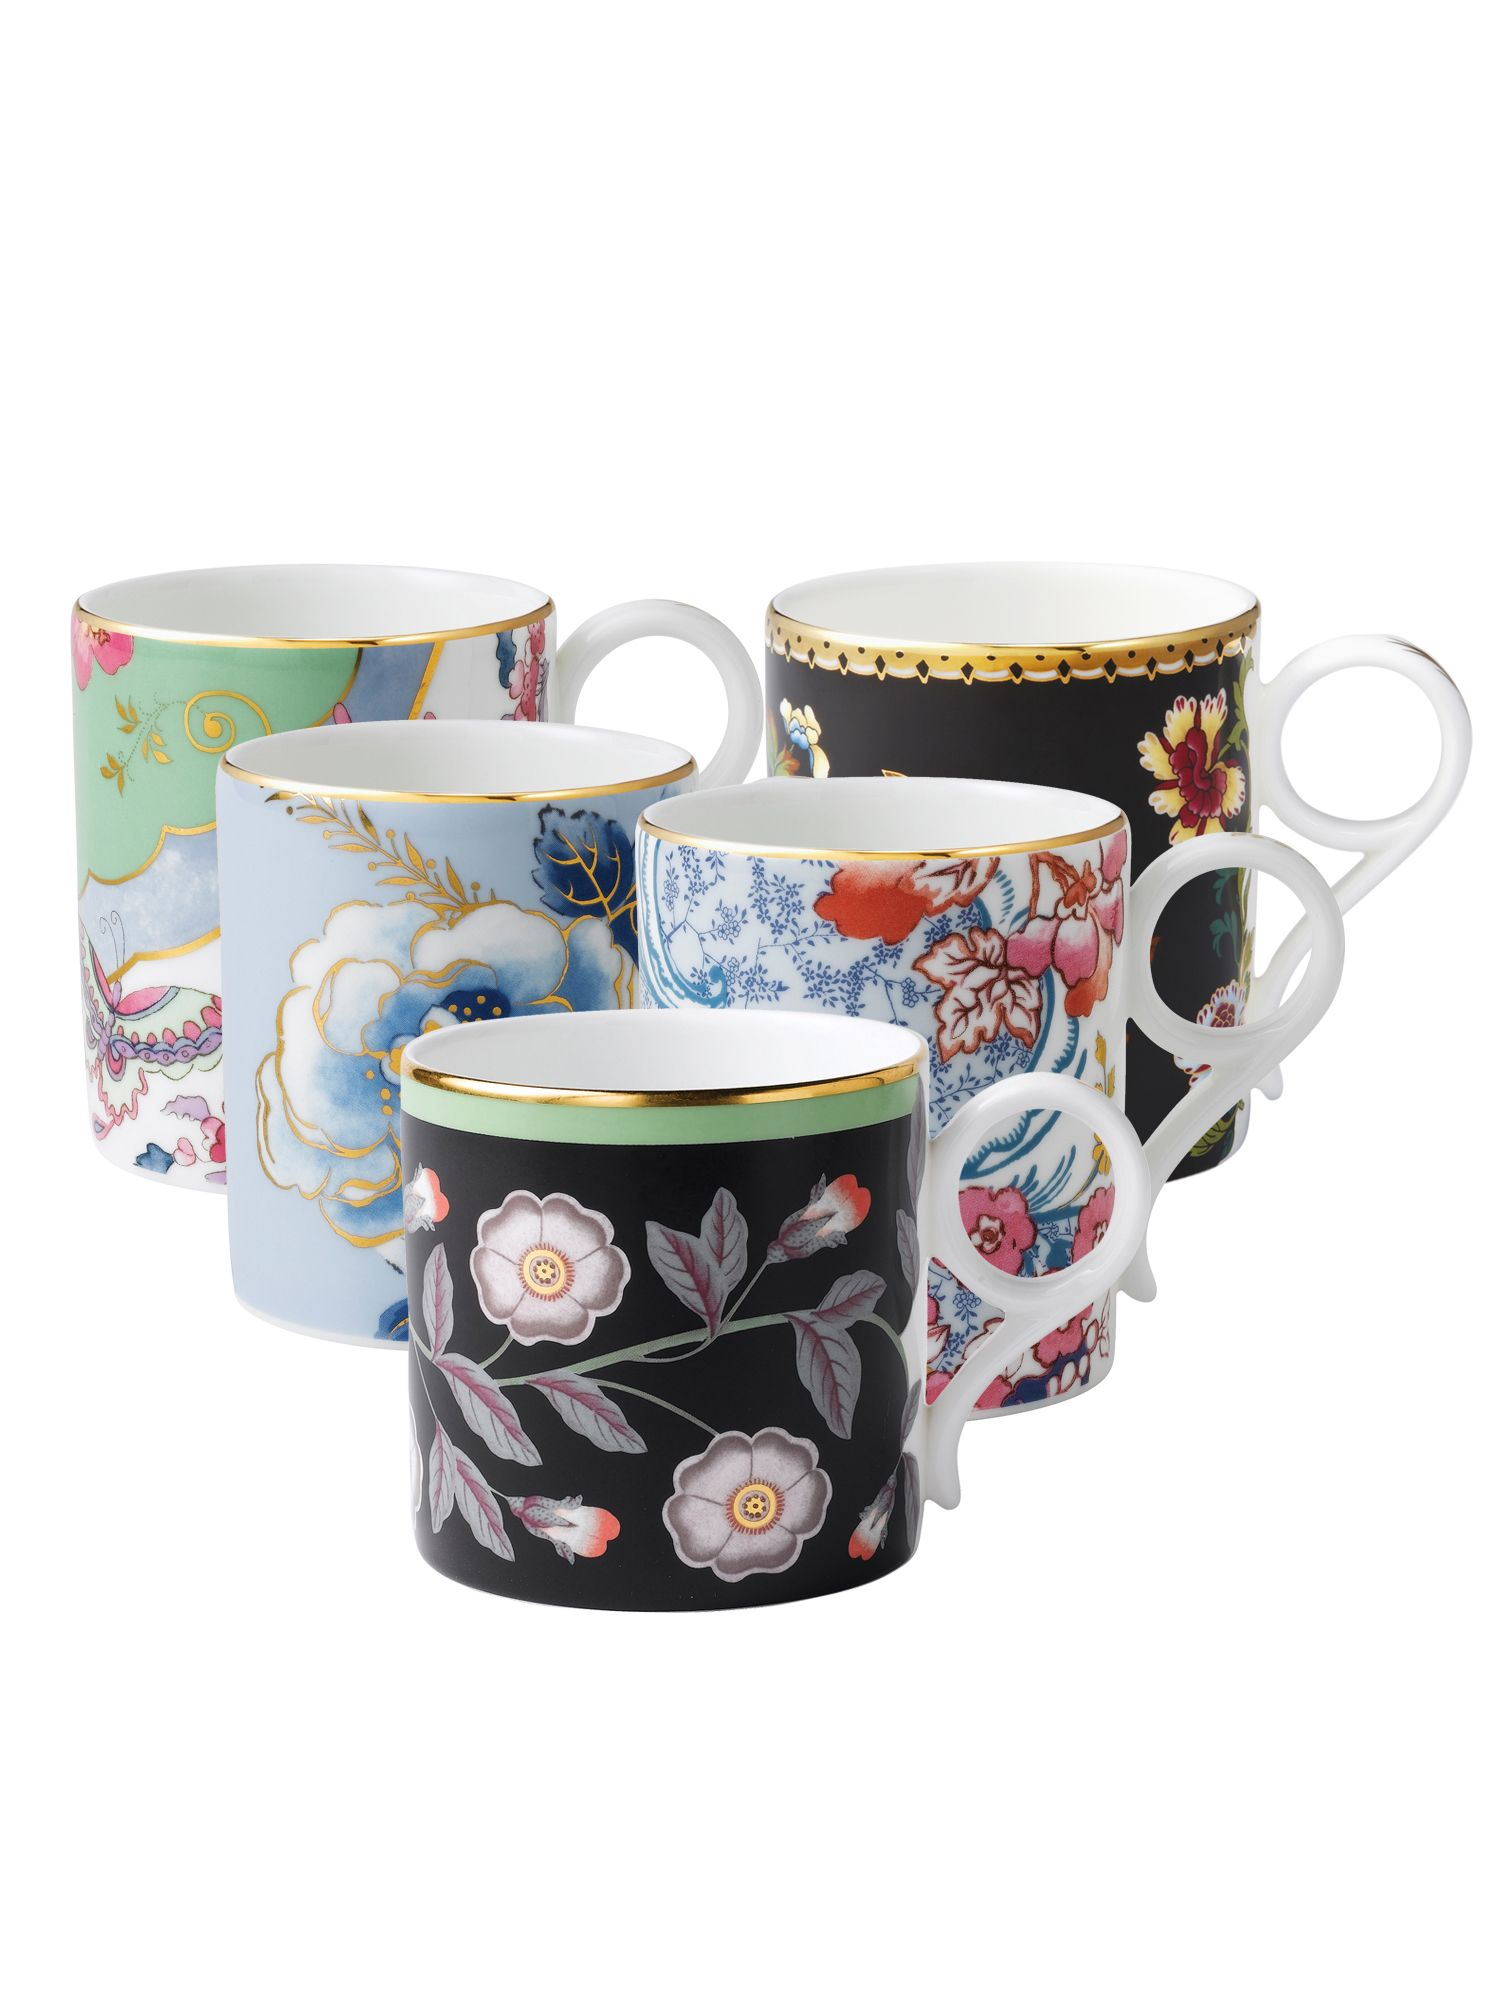 Archive mug collections